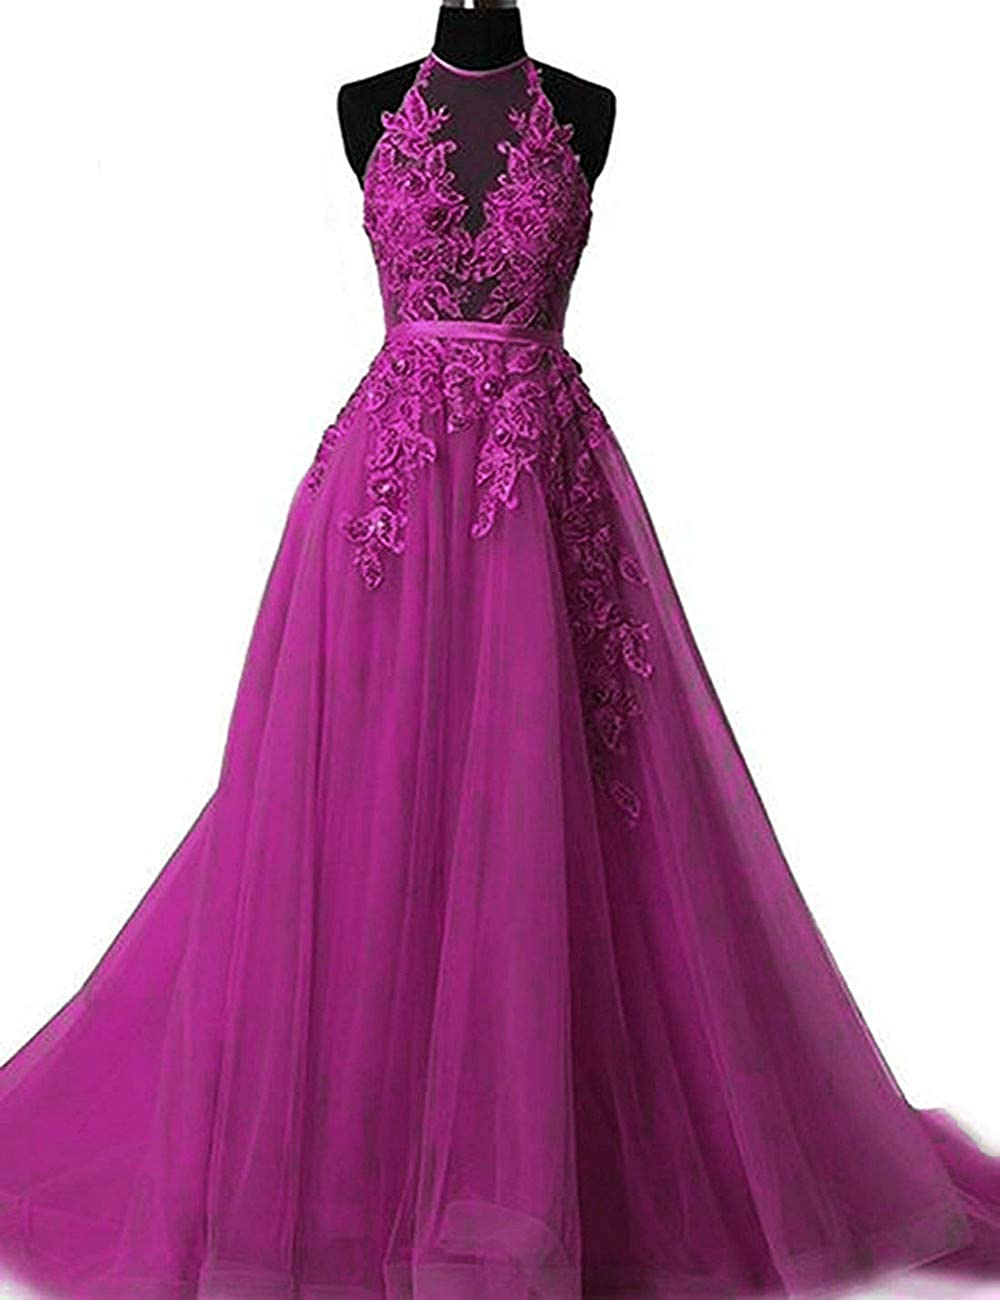 Fuchsia Liaoye Women's Halter Lace Prom Dresses Long Formal Party Gown 2019 Backless Evening Dress for Weddings